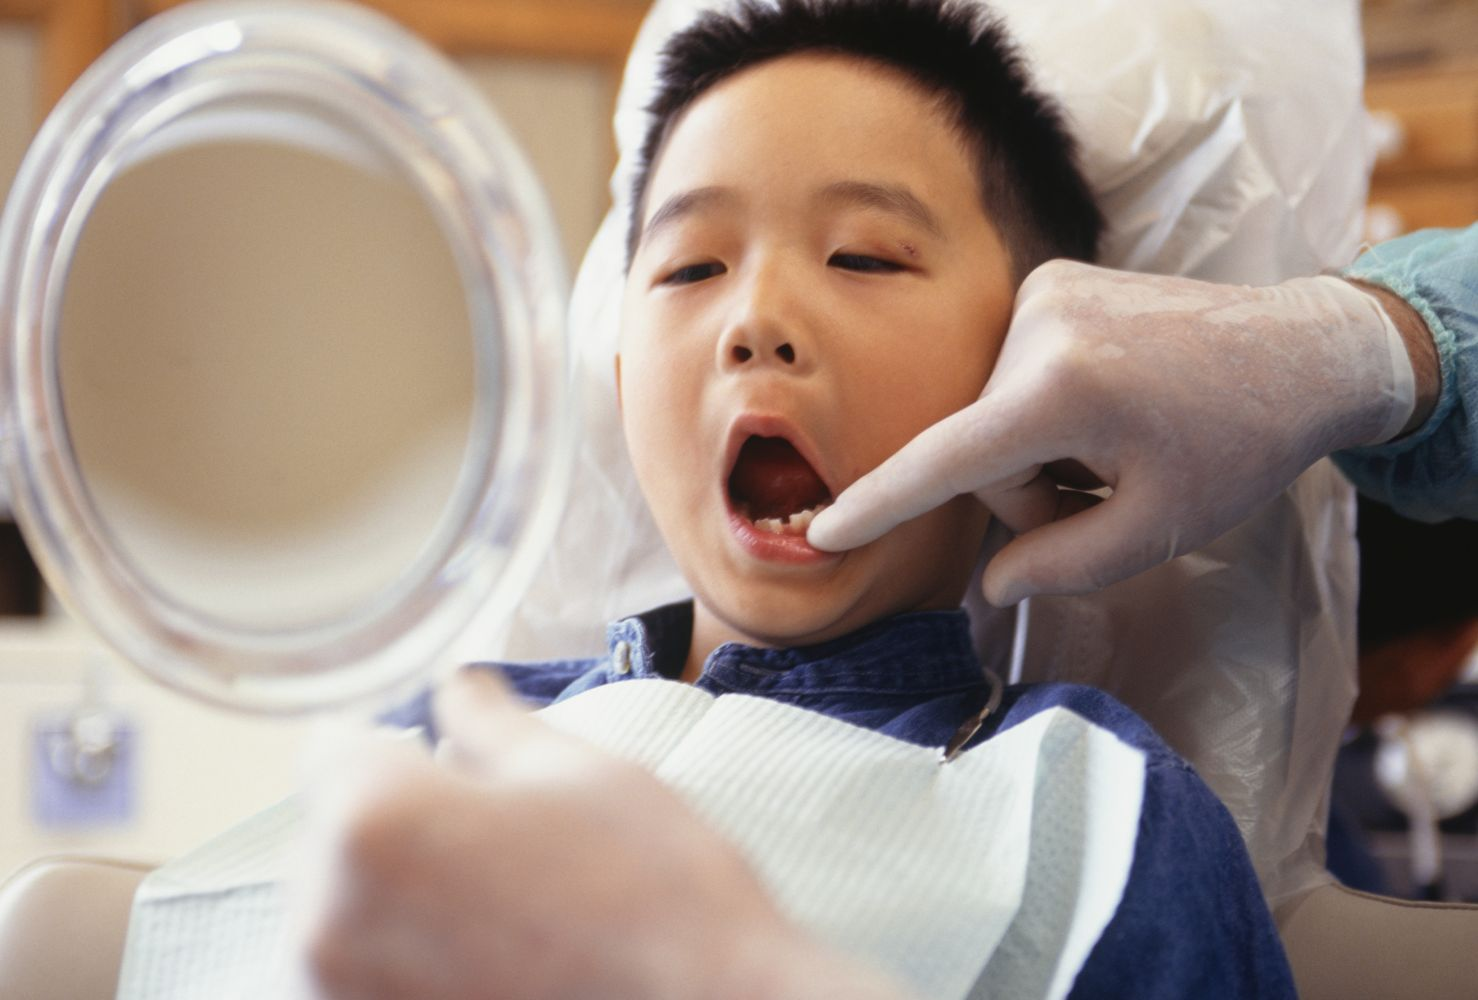 Tips For Preparing Your Child For Their First Family Dentist Visit